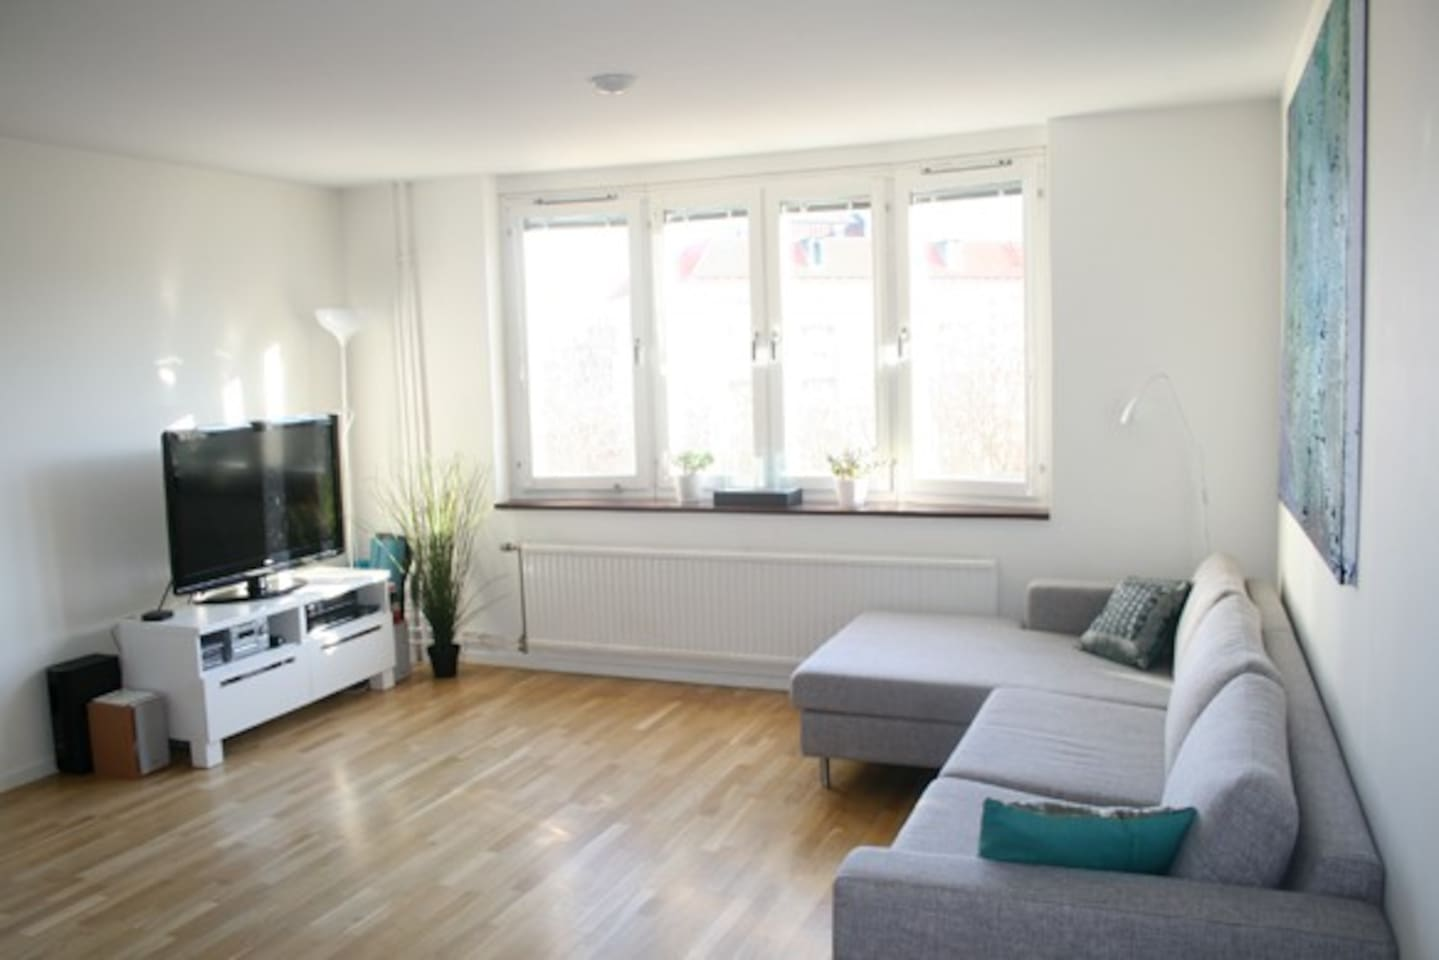 Spacious living room with a open view over a park